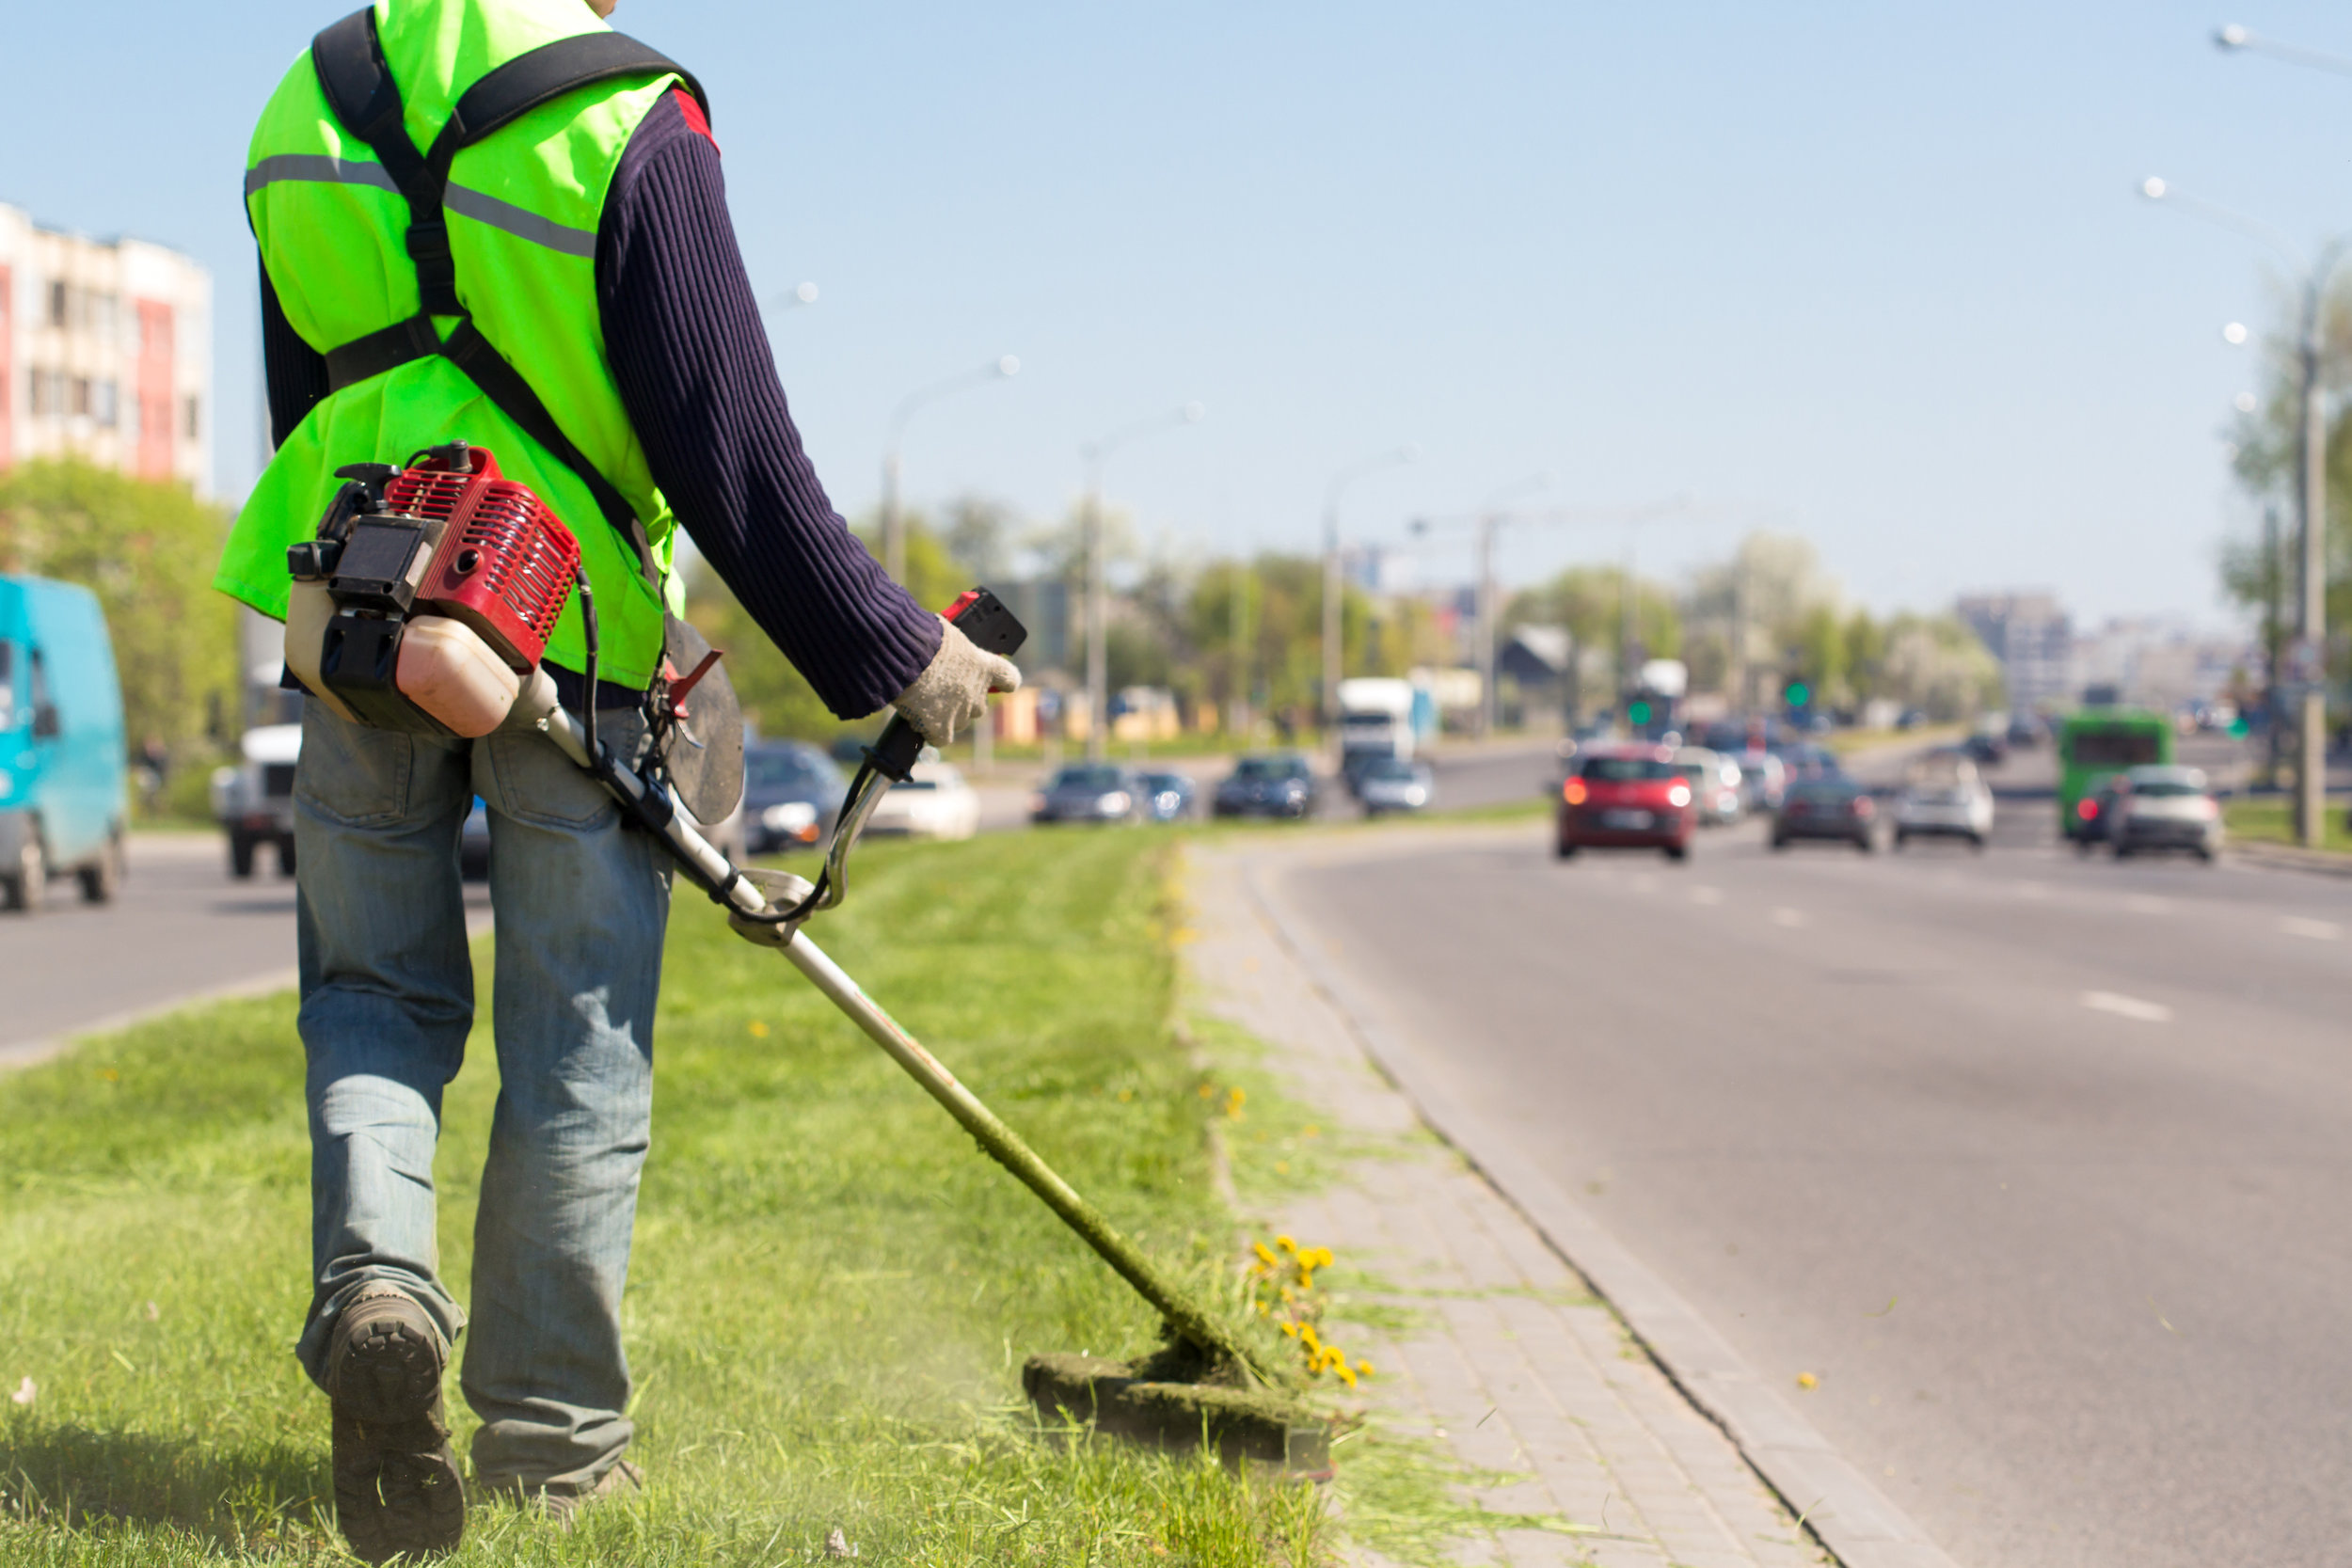 Man in road median with a weed wacker.